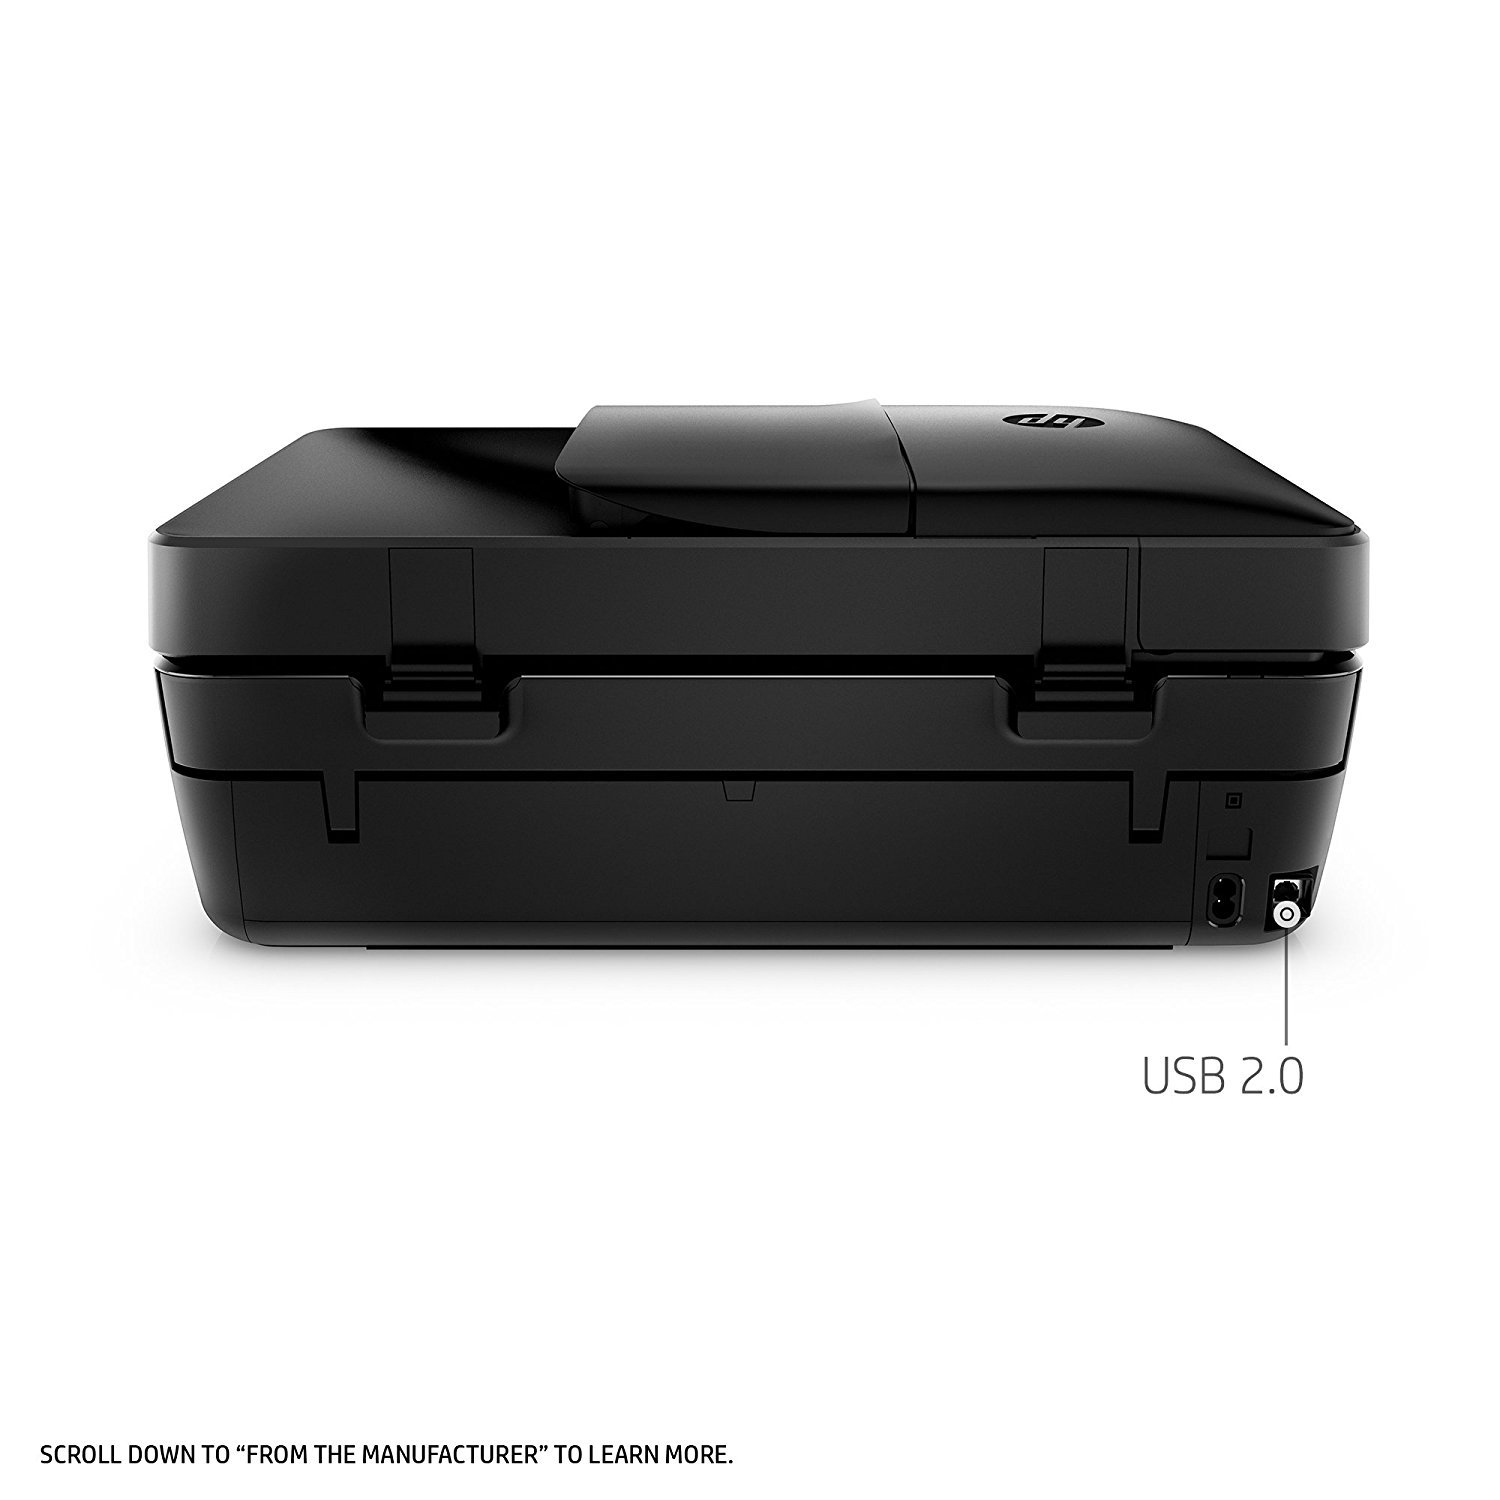 HP OfficeJet 4650 Wireless All-in-One Photo Printer, Copier and Scanner - Black (Certified Refurbished) by HP (Image #4)